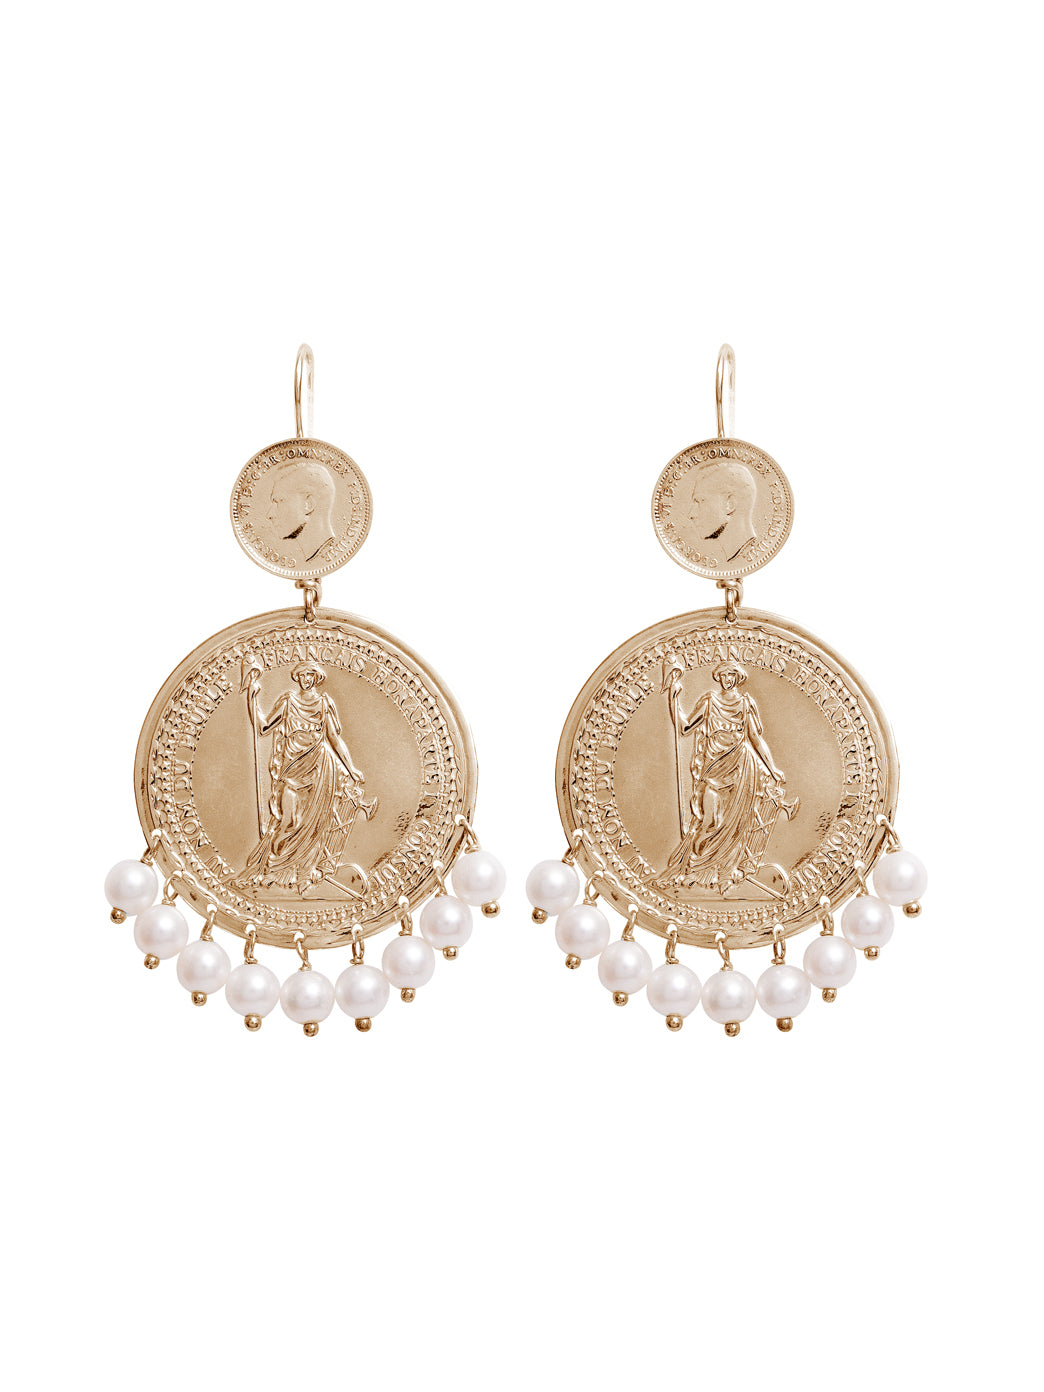 Fiorina Jewellery Gold Marrakesh Earrings